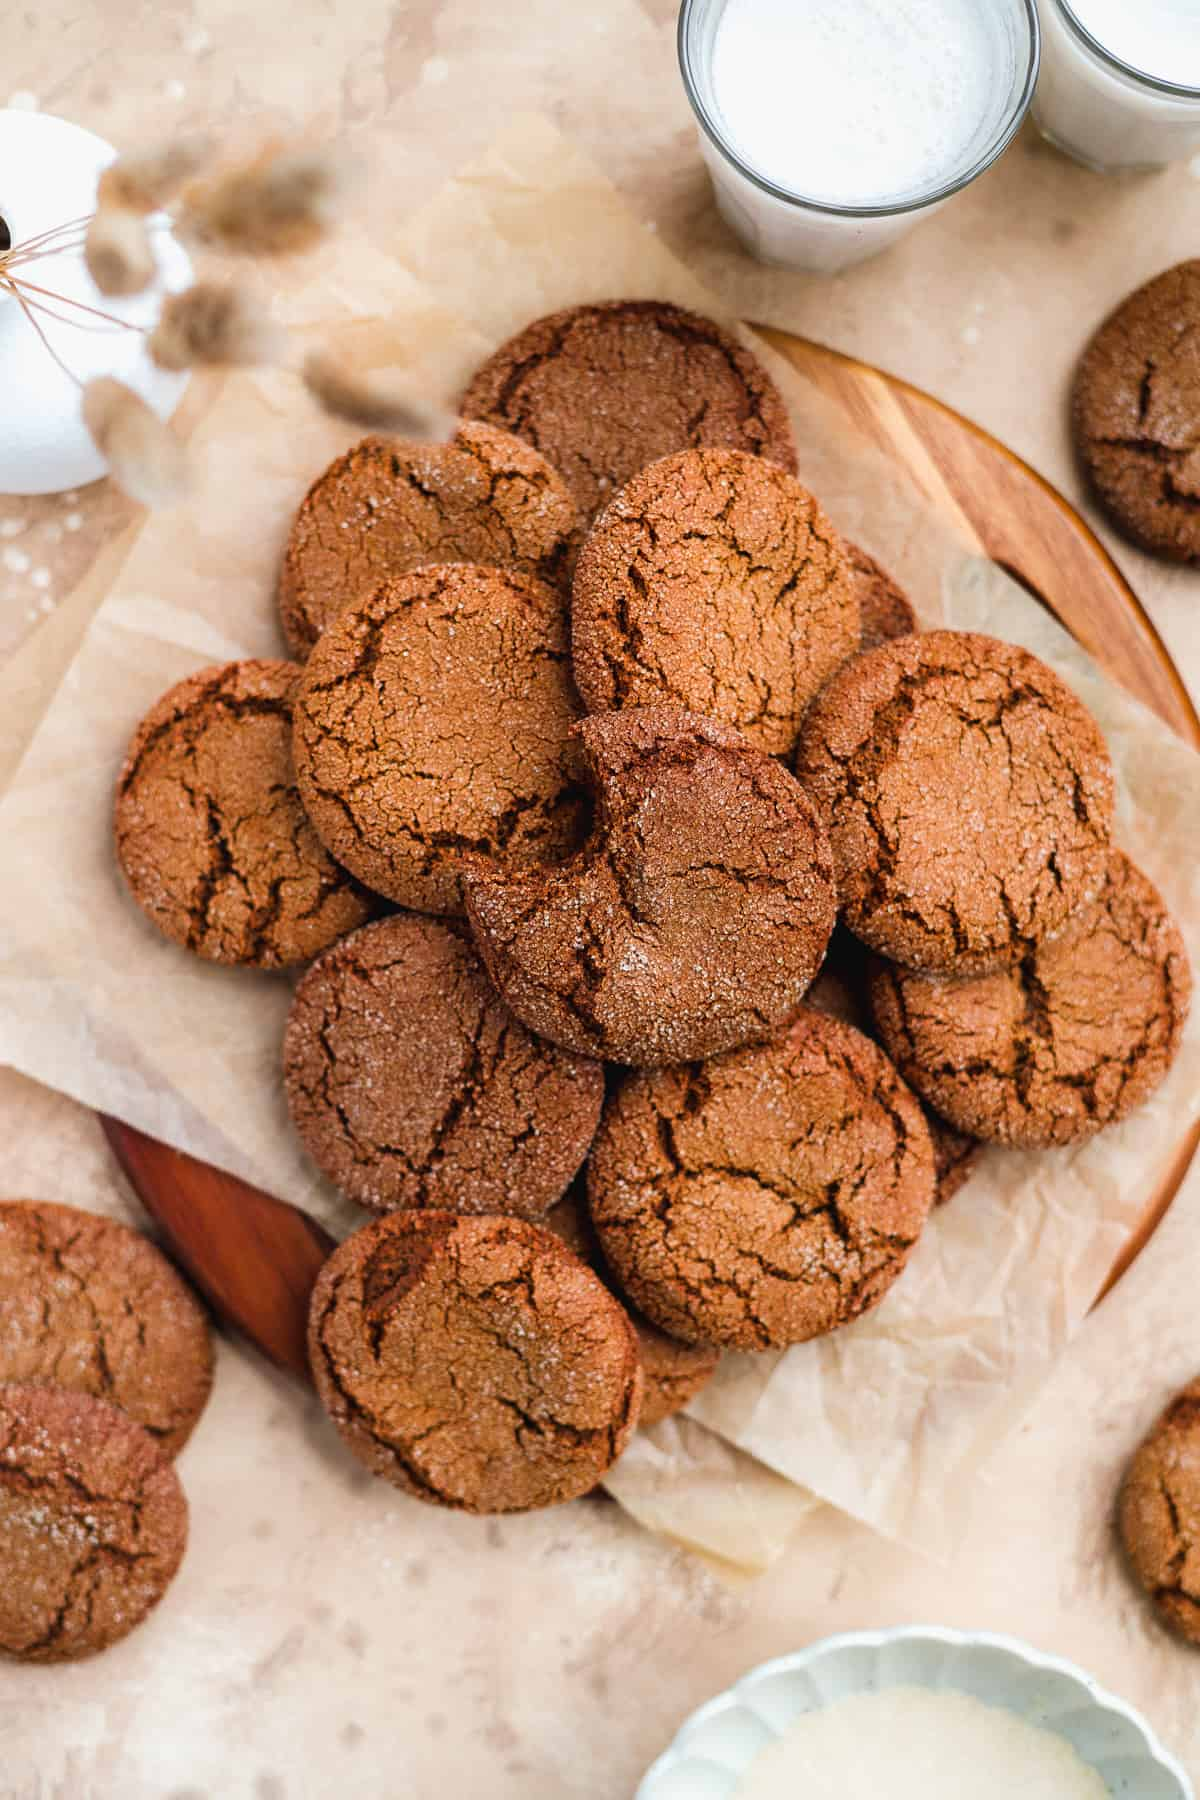 Overhead view of a plate of a dozen freshly baked Soft and Chewy Ginger Snap Cookies on parchment paper on top of a wooden tray.  The top cookie has a bite removed.